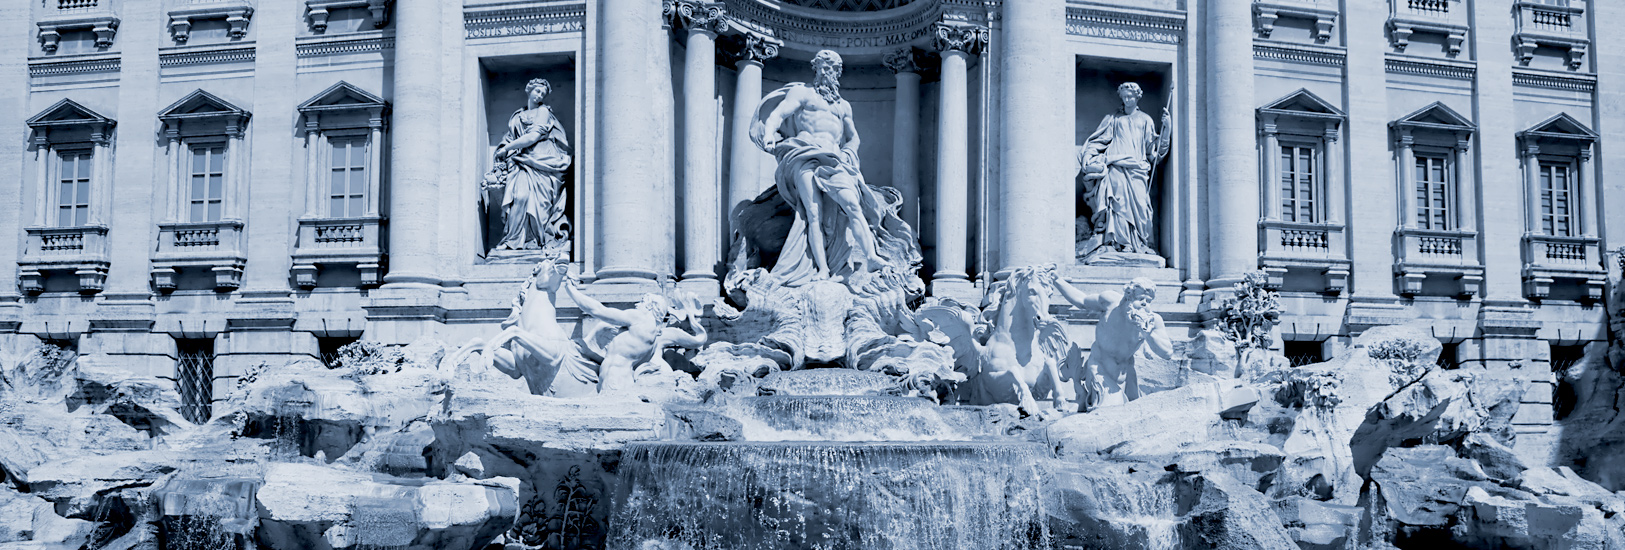 banner-trevi-fountain